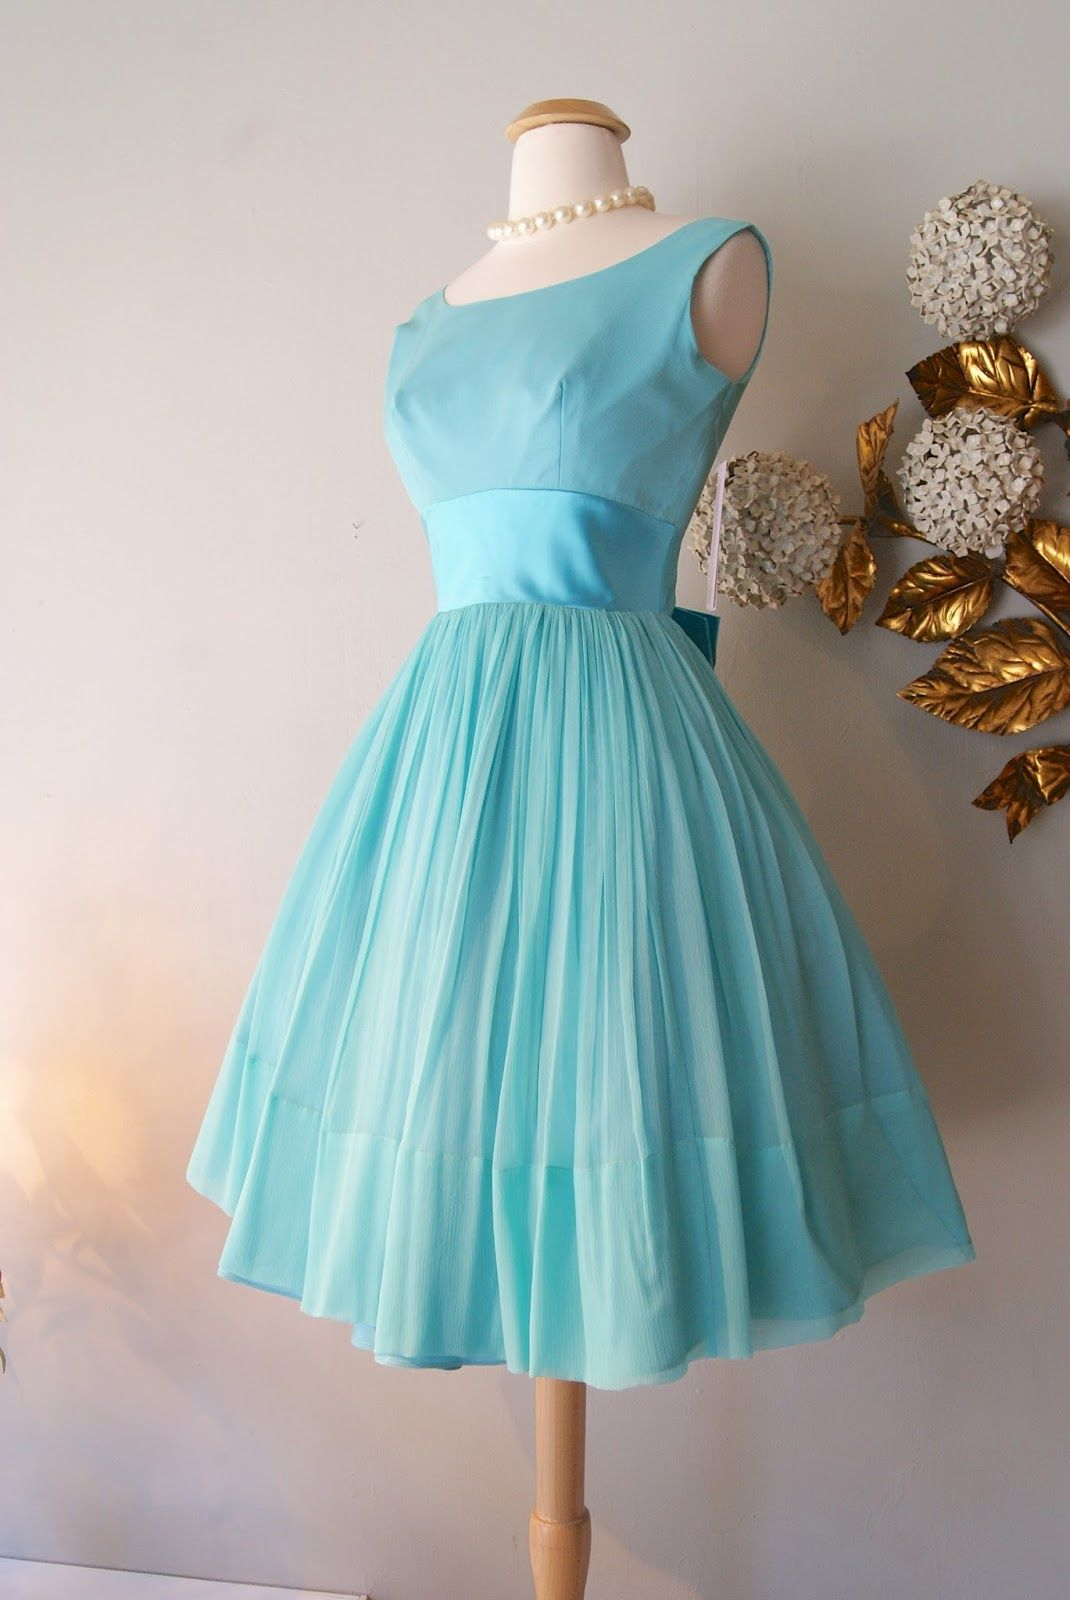 Tiffany blue bridesmaids | Wedding | Pinterest | Tiffany blue ...